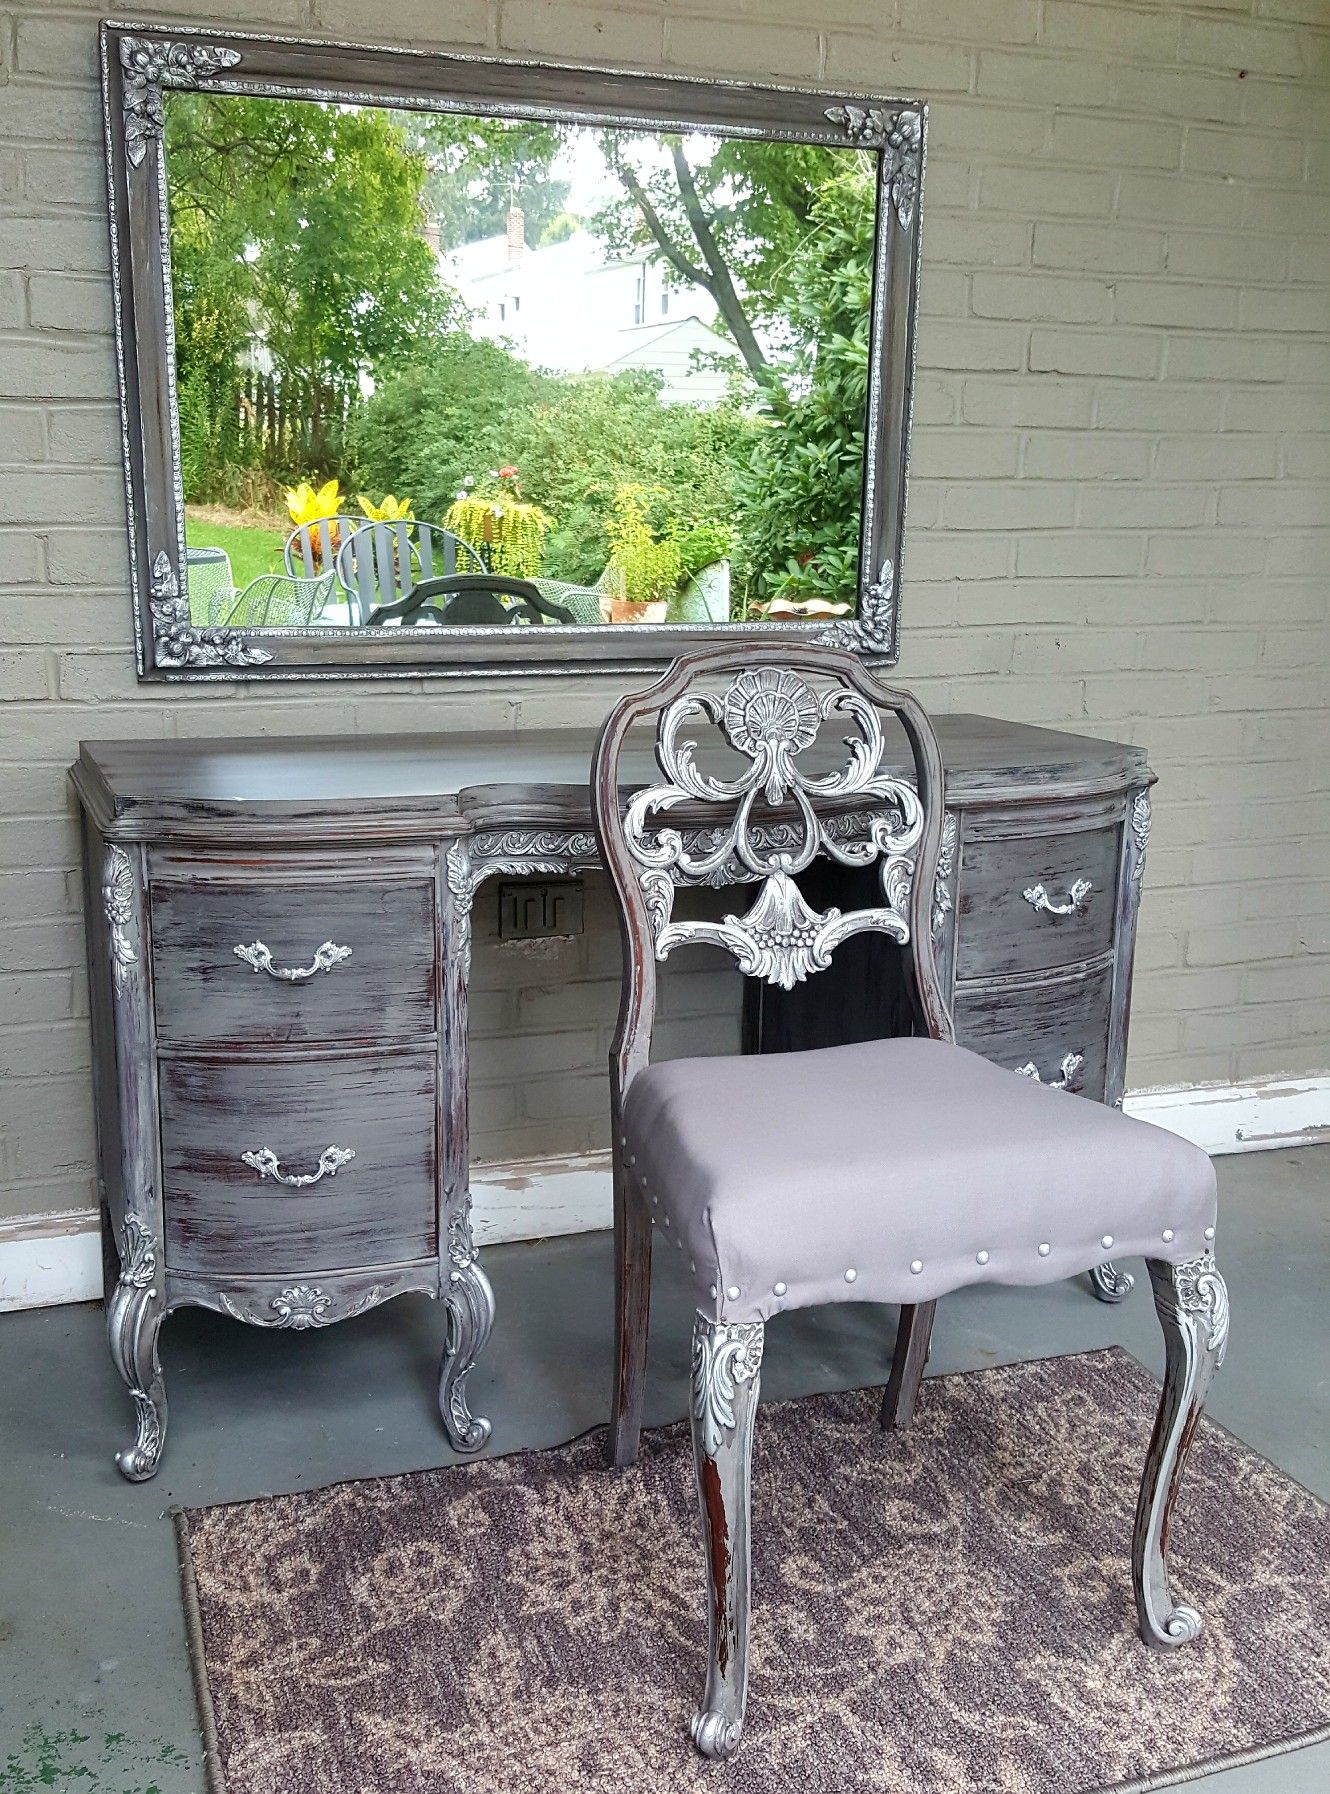 My newest creation a year old vanity chair and mirror set